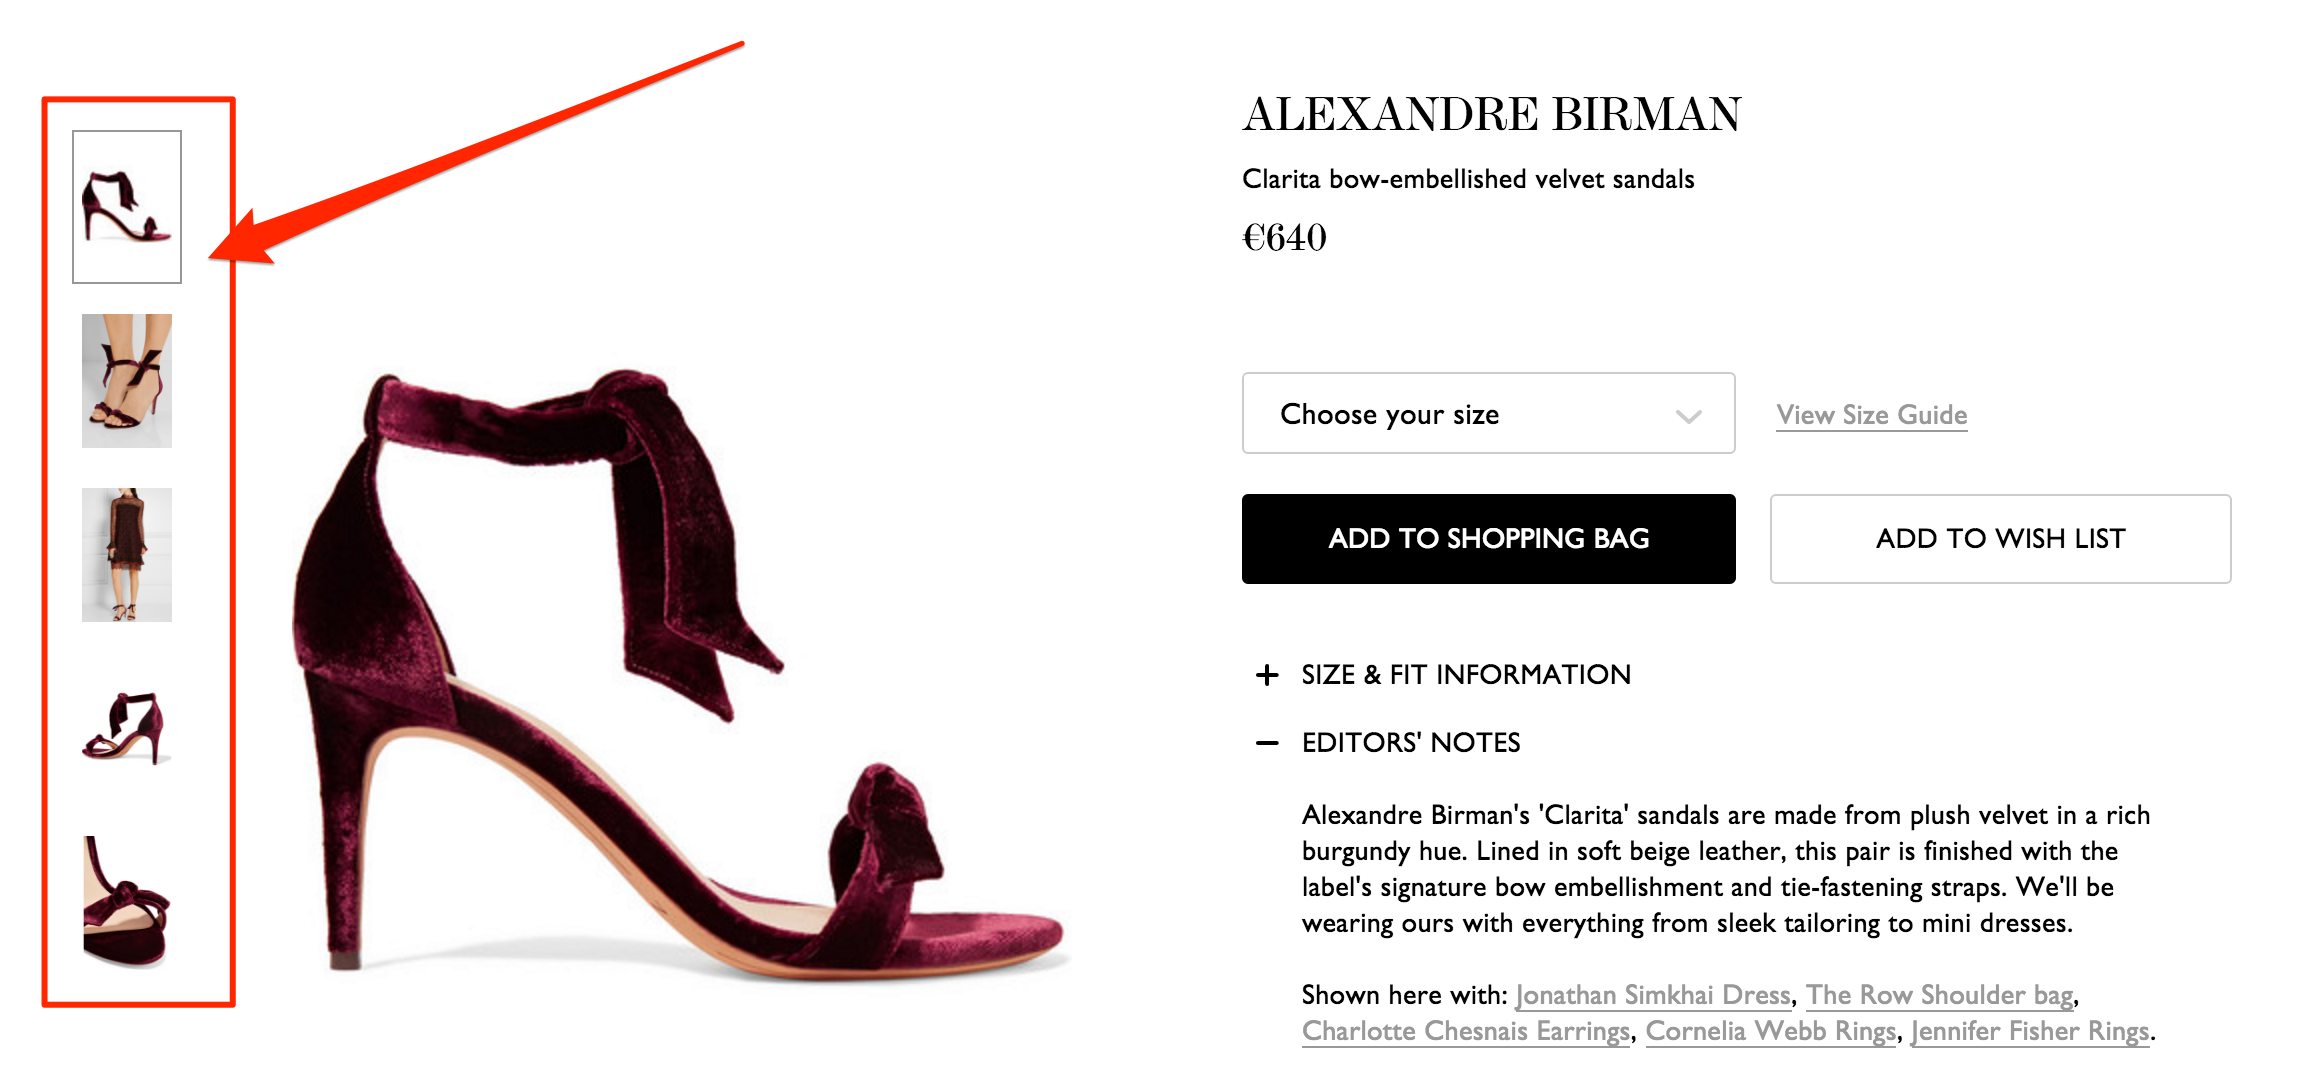 An engaging product page on Netaporter.com